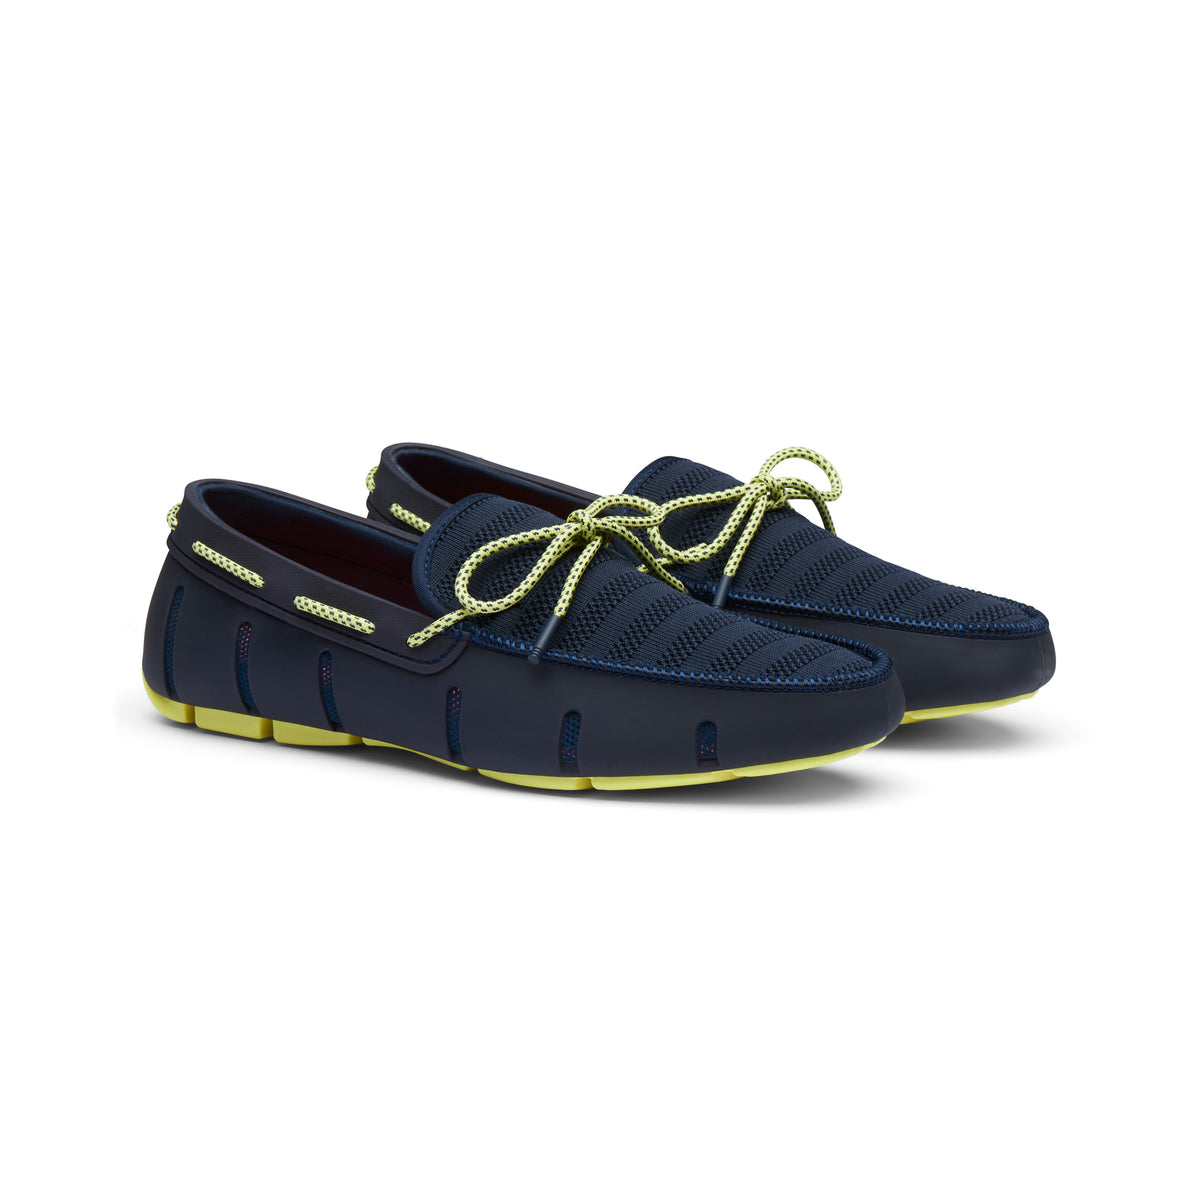 Knit Lace Loafer - background::white,variant::Navy/Limelight